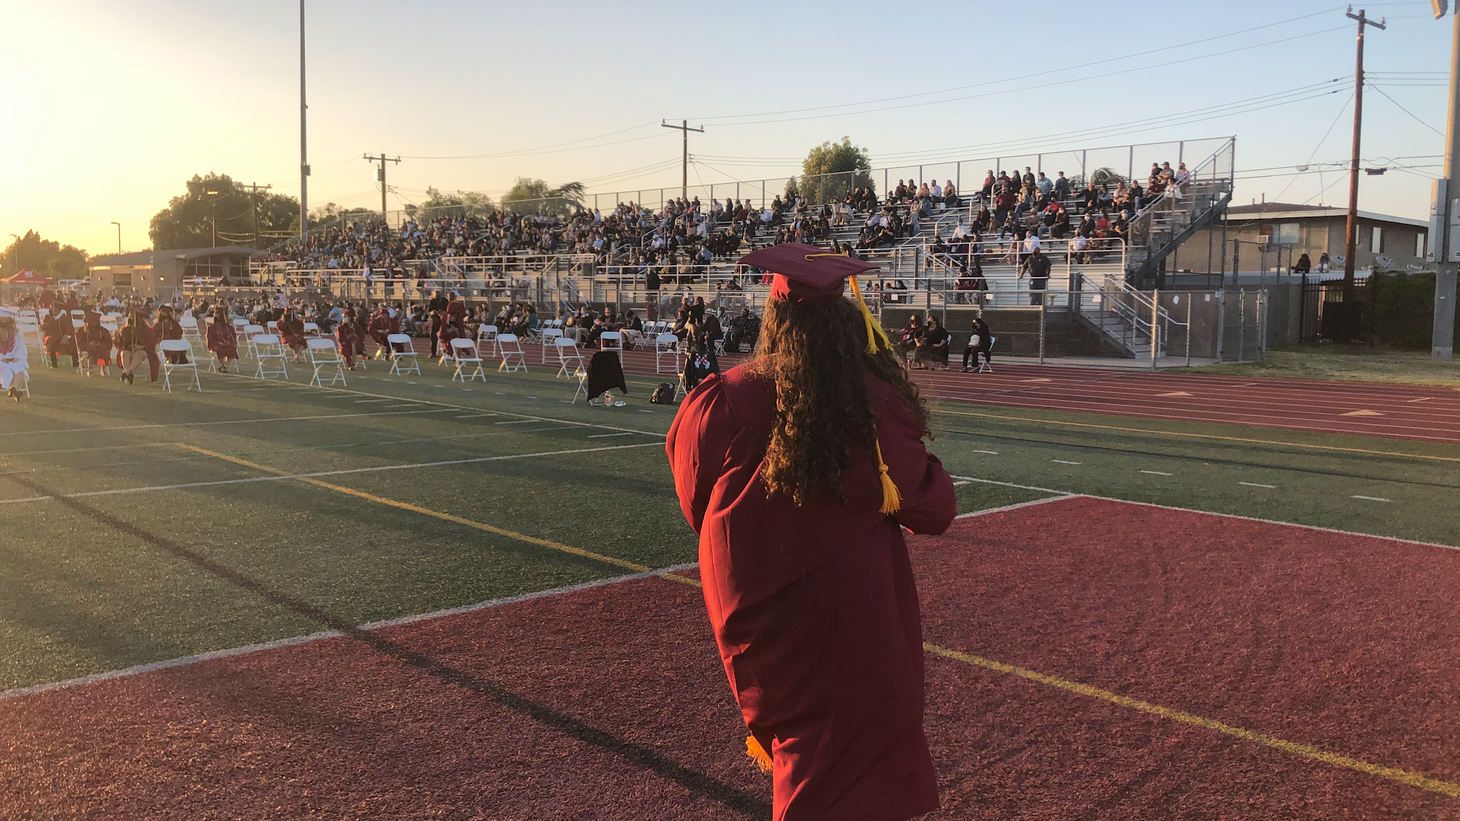 A 2020 graduate walks across the stage, 12 months after receiving her high school diploma.